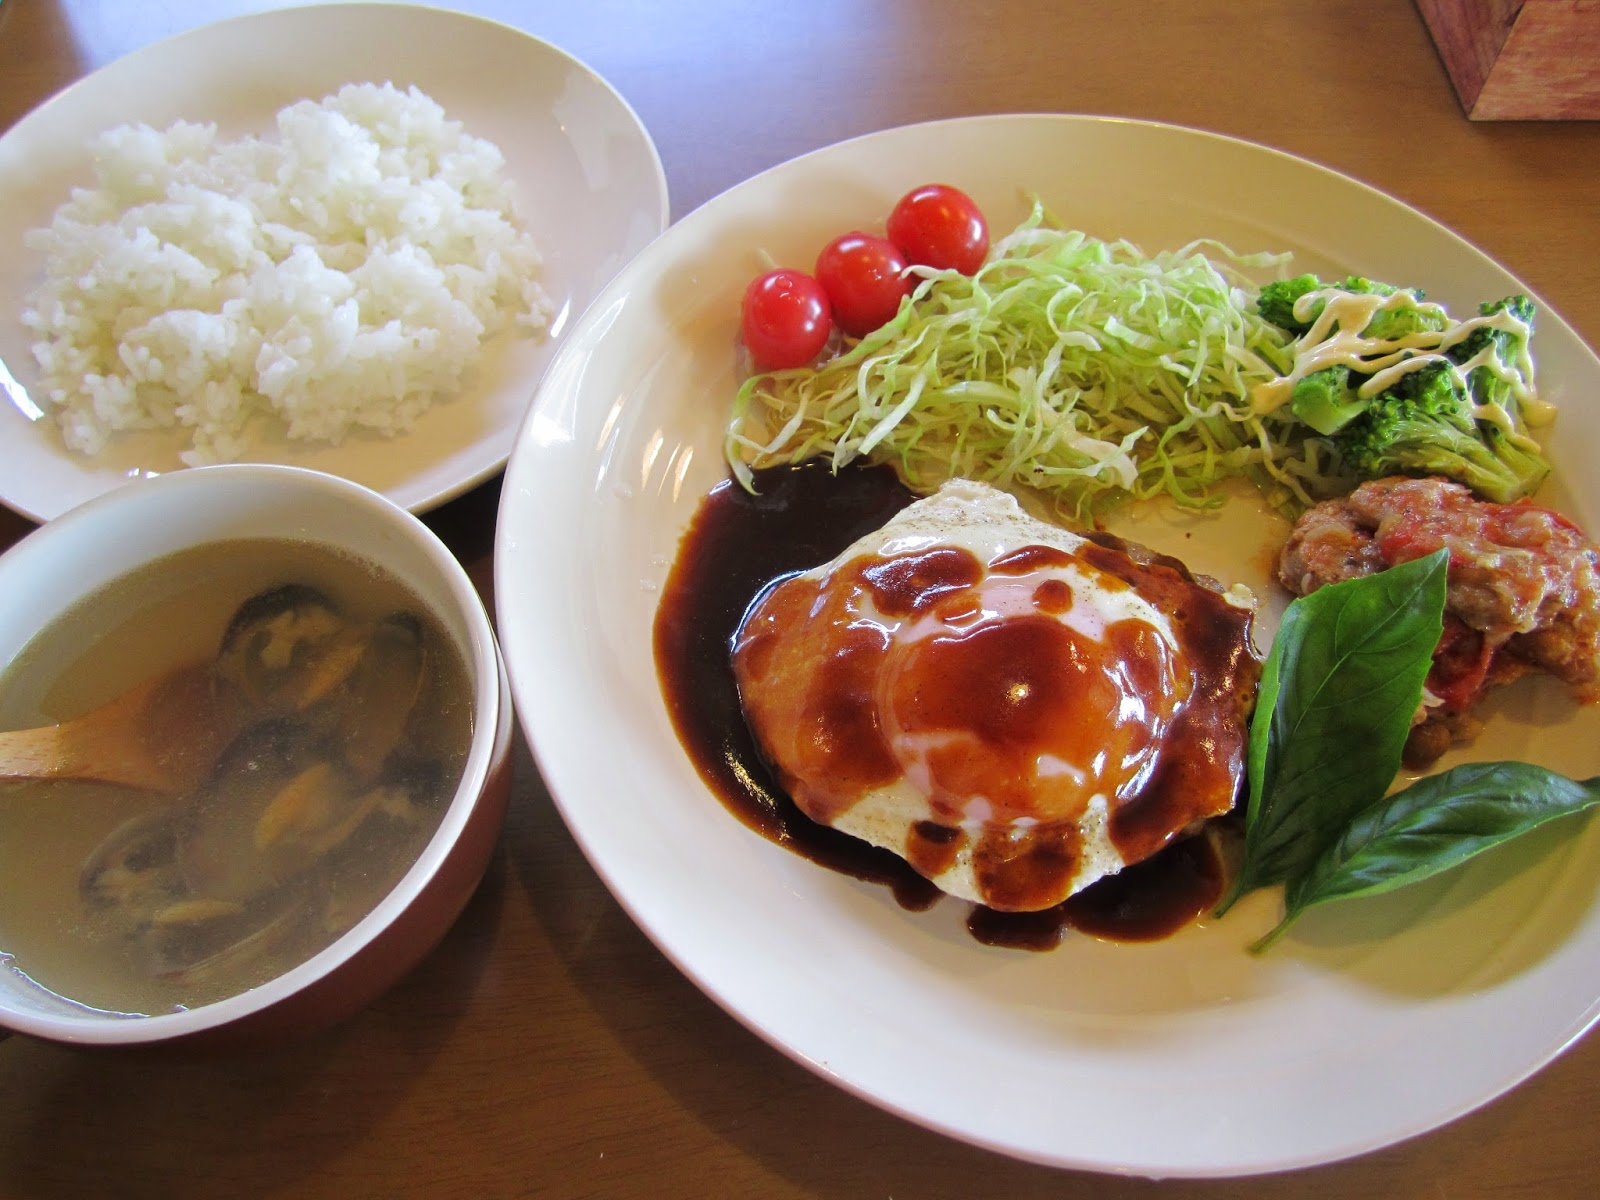 Daily Lunch Set Towada Bunny Rabbit Cafe Usa Cafe Lovelies 日替わりランチセット十和田うさぎカフェ うさカフェラヴリーズ